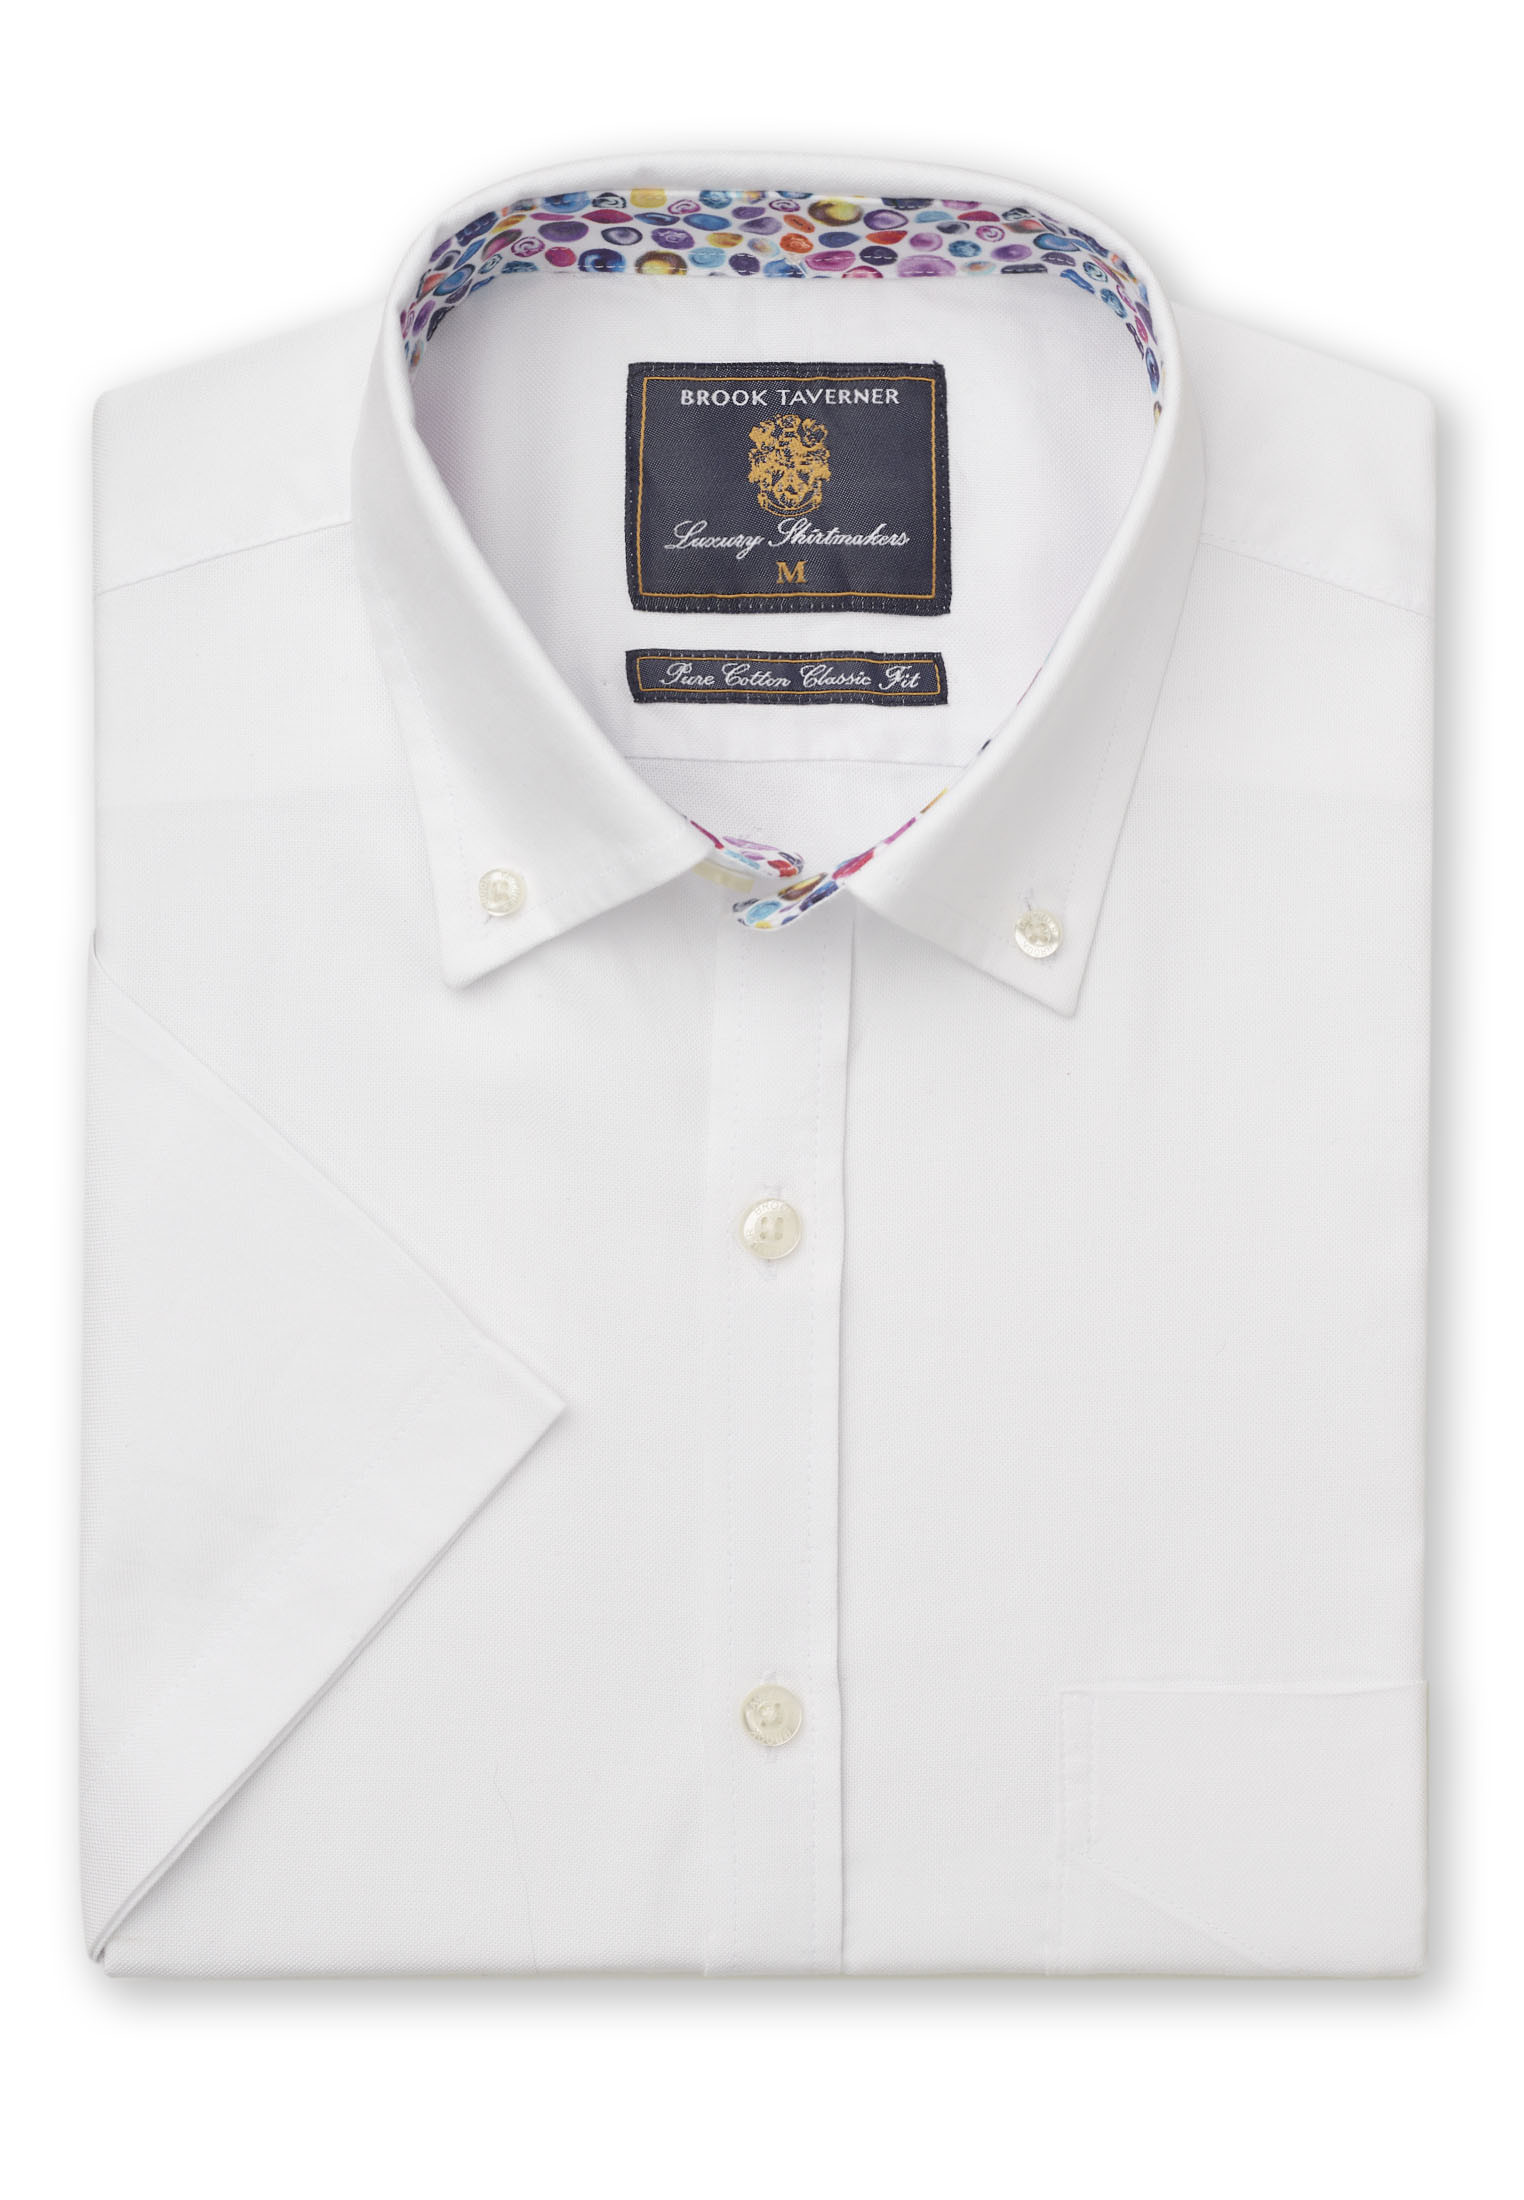 Long and Short Sleeve Classic and Tailored Fit White Oxford with Coloured Trim Shirt